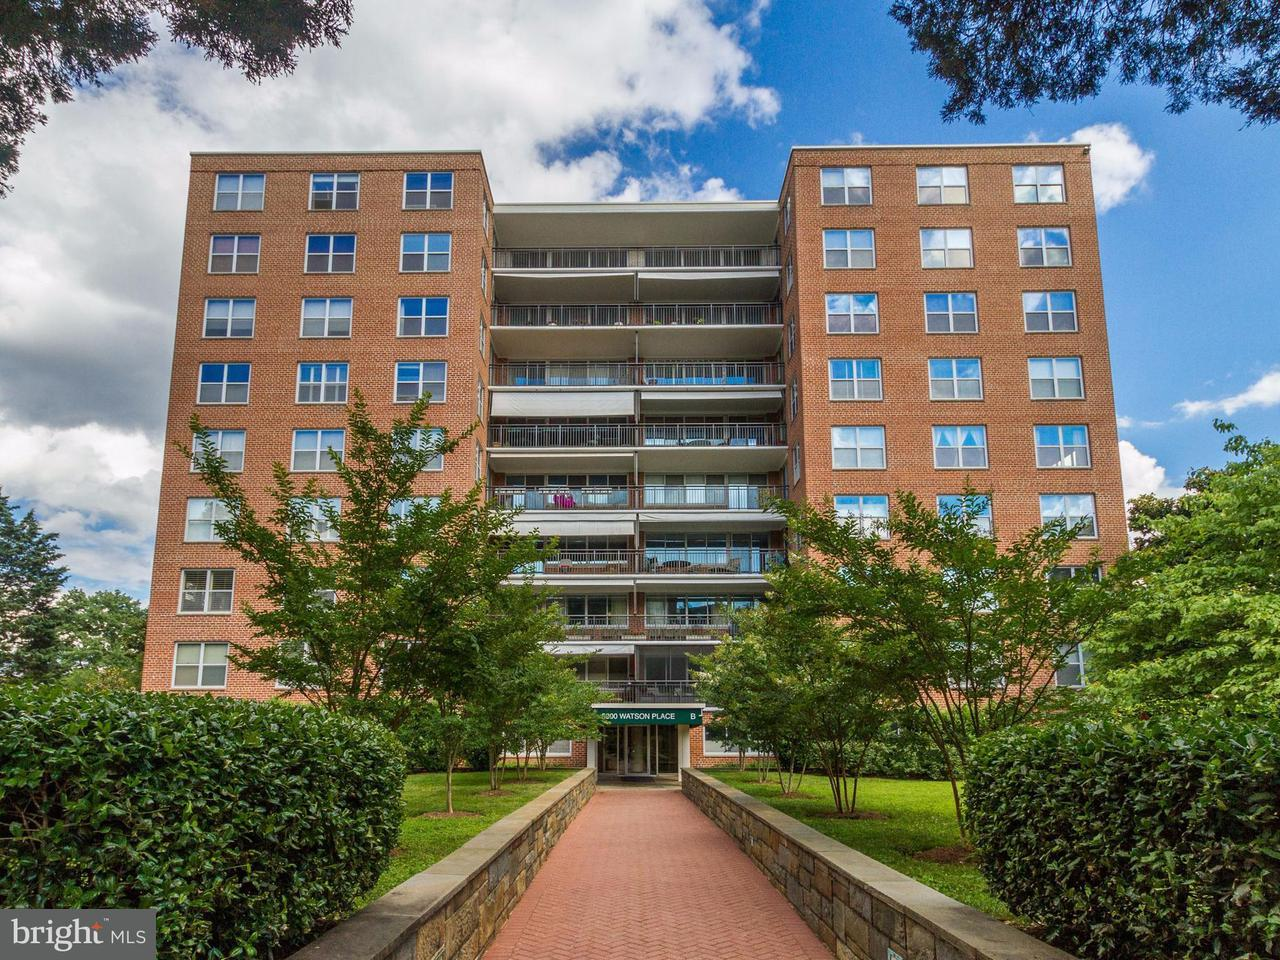 Condominium for Sale at 3900 Watson Pl Nw #B-3e 3900 Watson Pl Nw #B-3e Washington, District Of Columbia 20016 United States